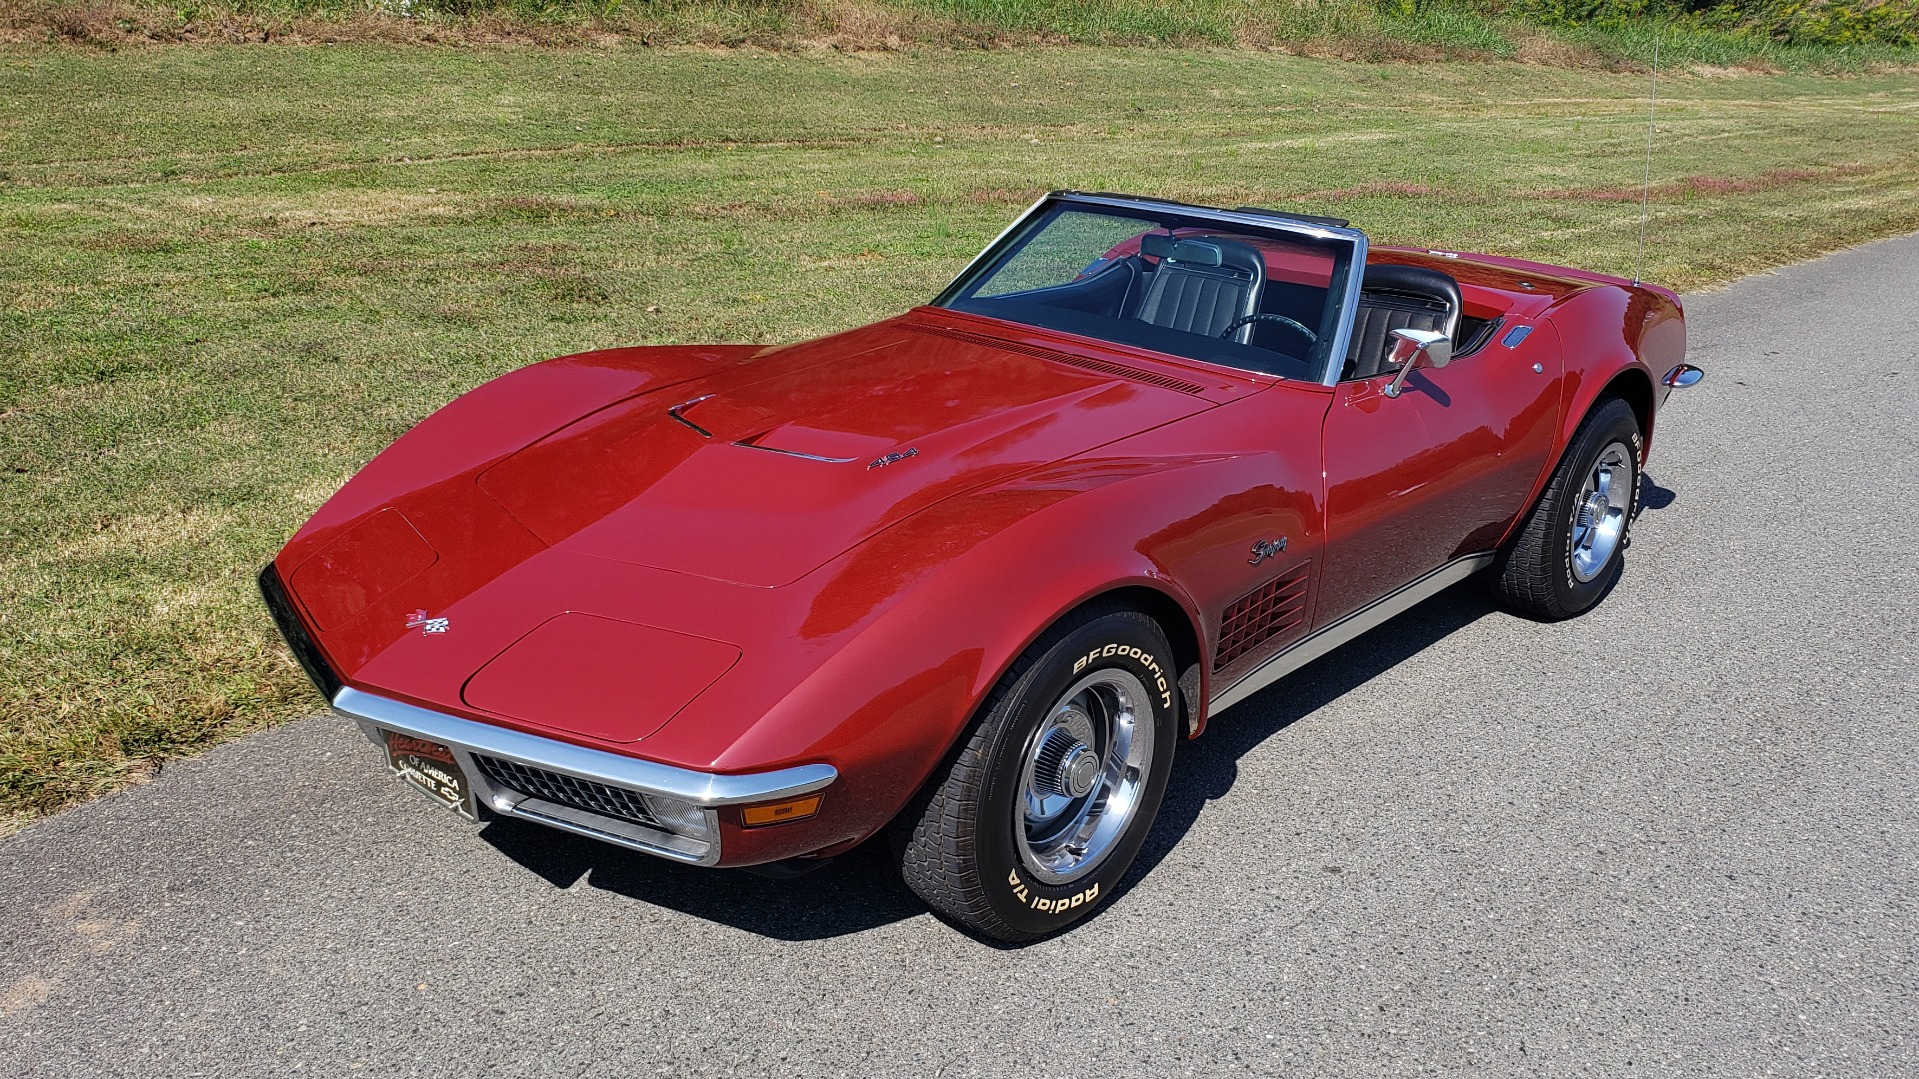 Used 1970 Chevrolet CORVETTE CONVERTIBLE / 454CI V8 / AUTO / NEW BLACK TOP / NUMBERS MATCH for sale $50,499 at Formula Imports in Charlotte NC 28227 3